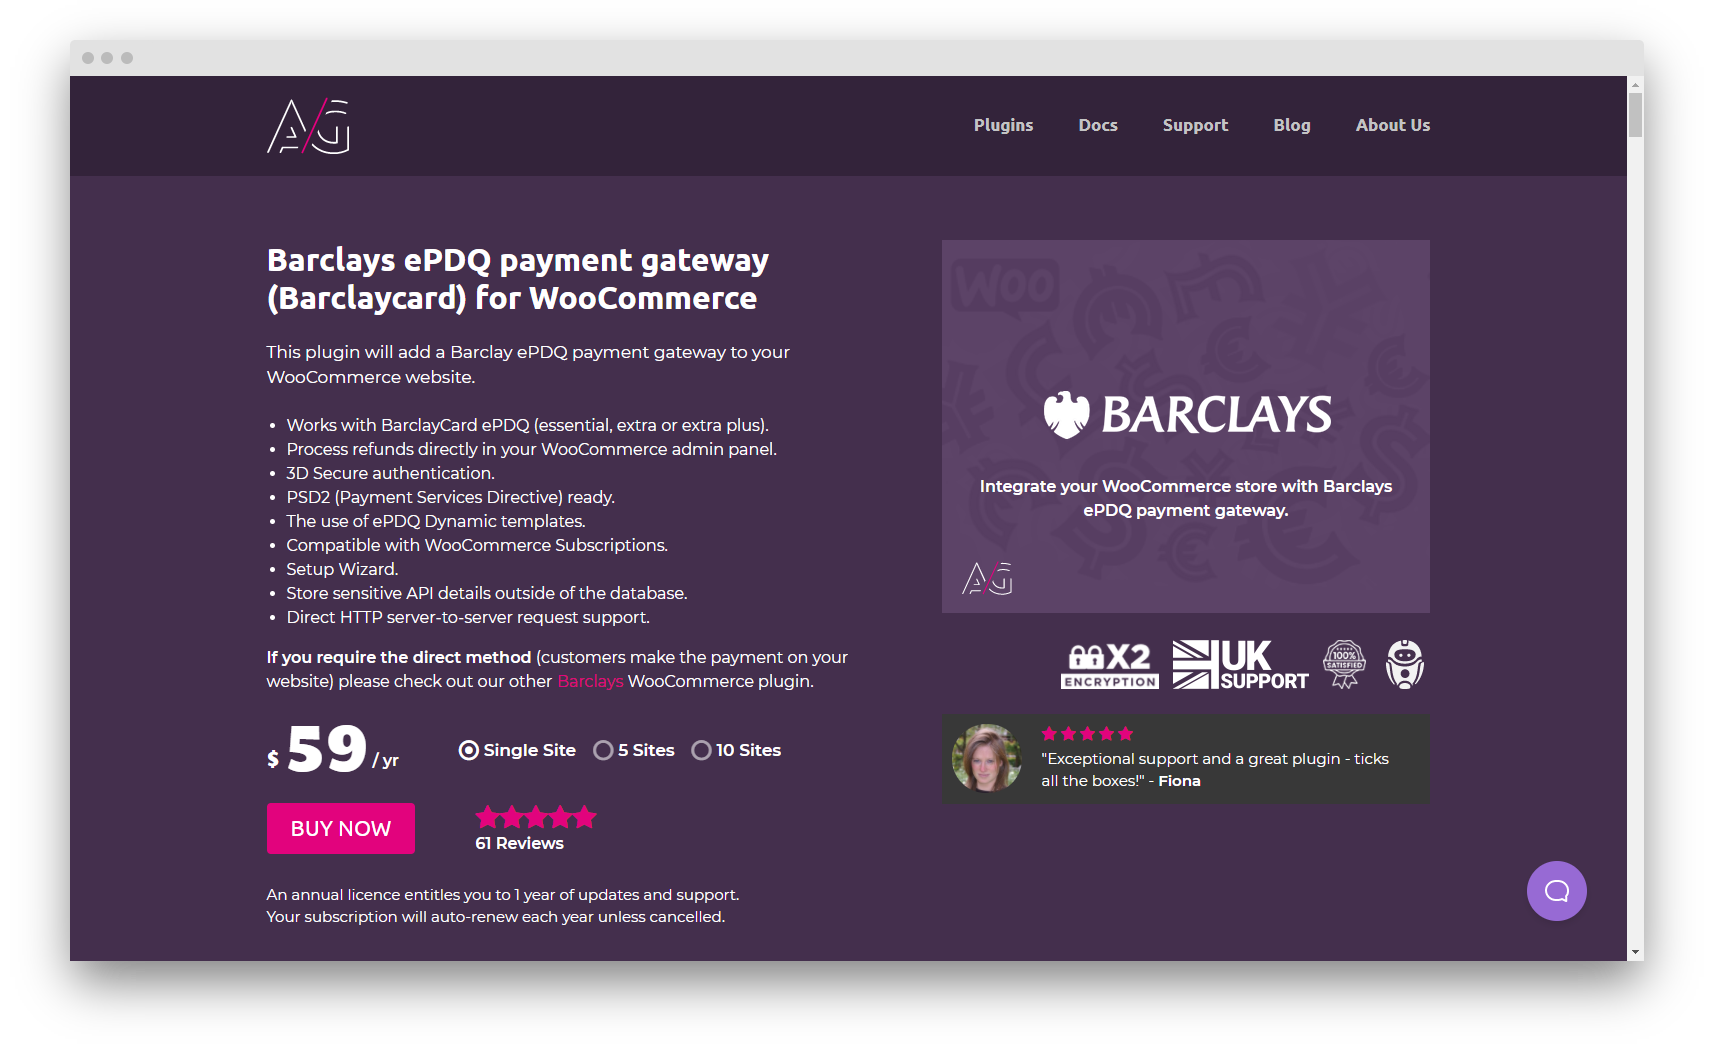 Landing Page of Barclays ePDQ Payment Gateway for WooCommerce Plugin